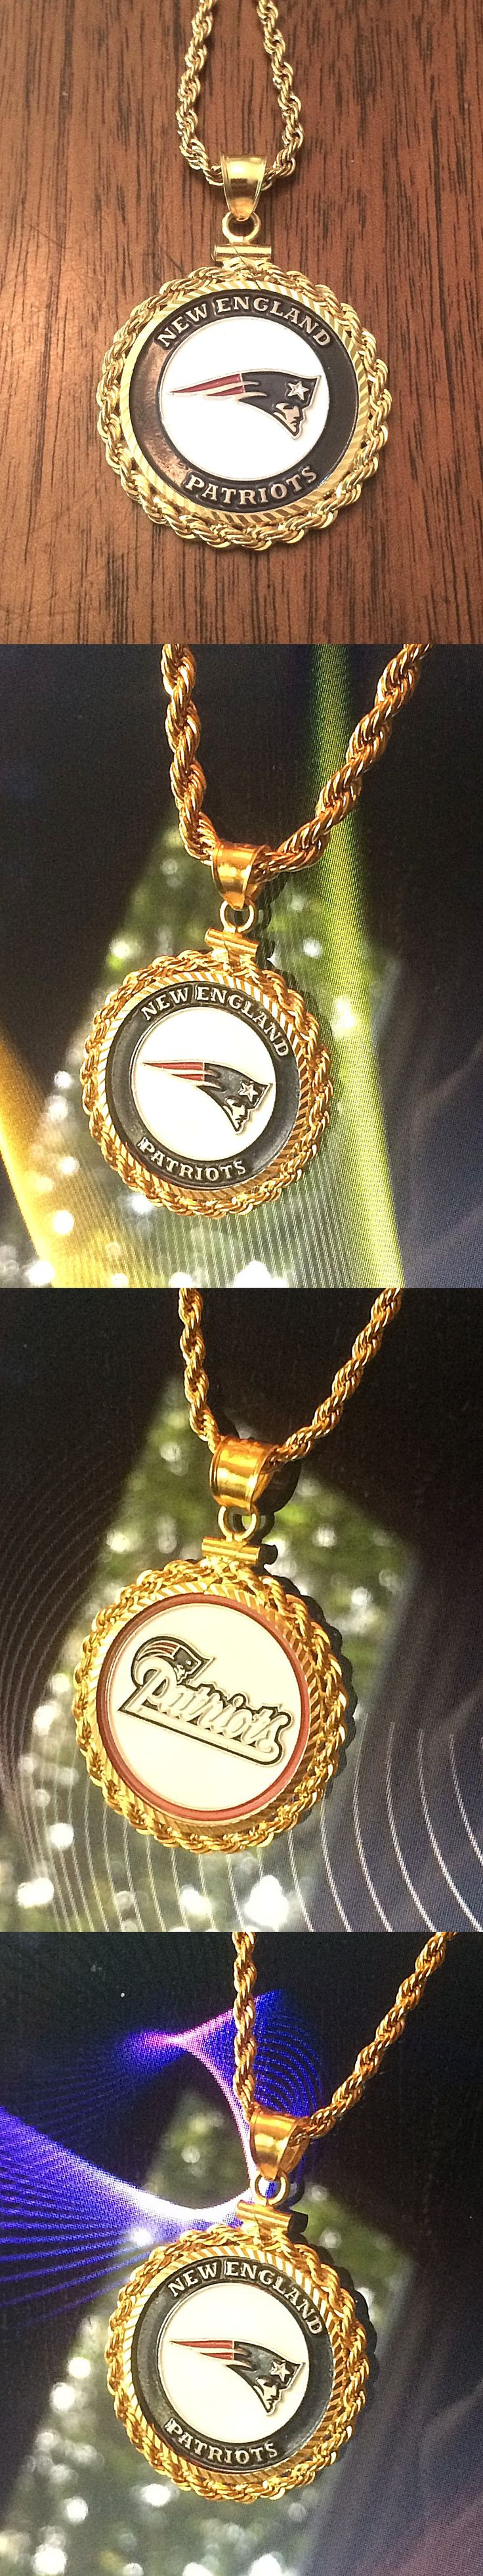 Other Jewelry and Watches 98863: Awesome Gold Filled Necklace W Nfl New England Patriots Setting Jewelry Gift -> BUY IT NOW ONLY: $99.99 on eBay!